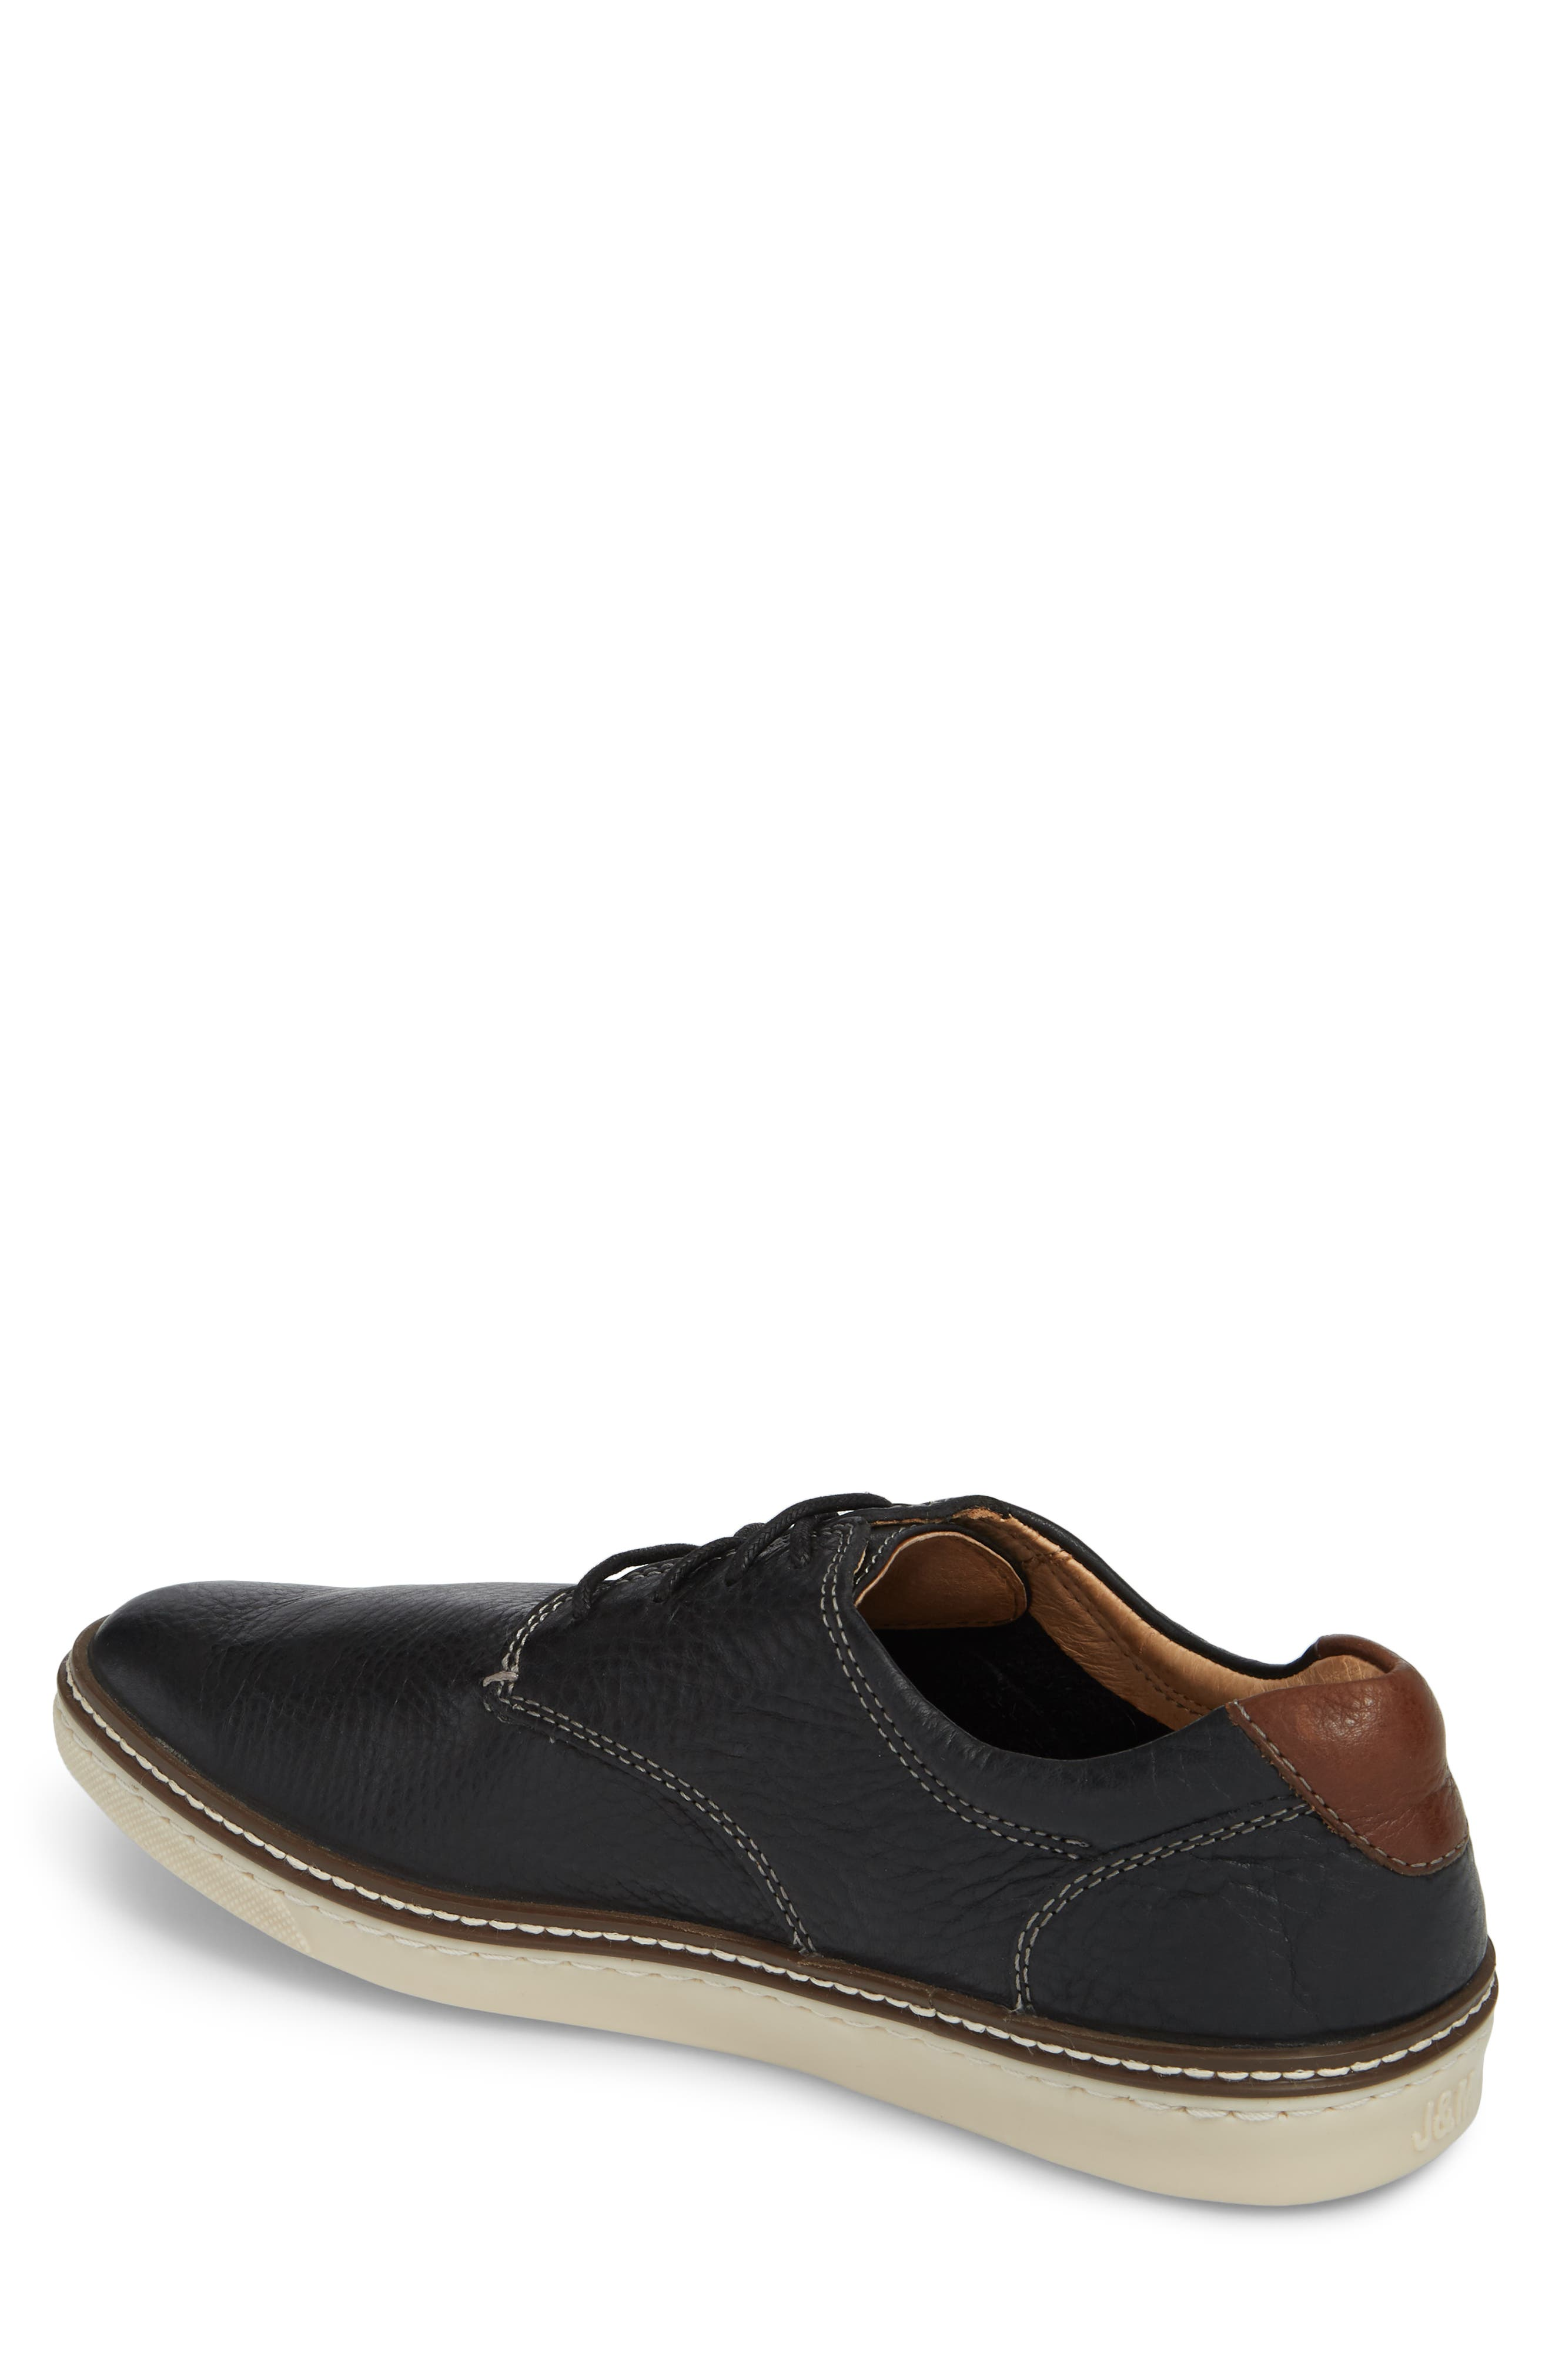 JOHNSTON & MURPHY, McGuffey Derby Sneaker, Alternate thumbnail 2, color, BLACK LEATHER